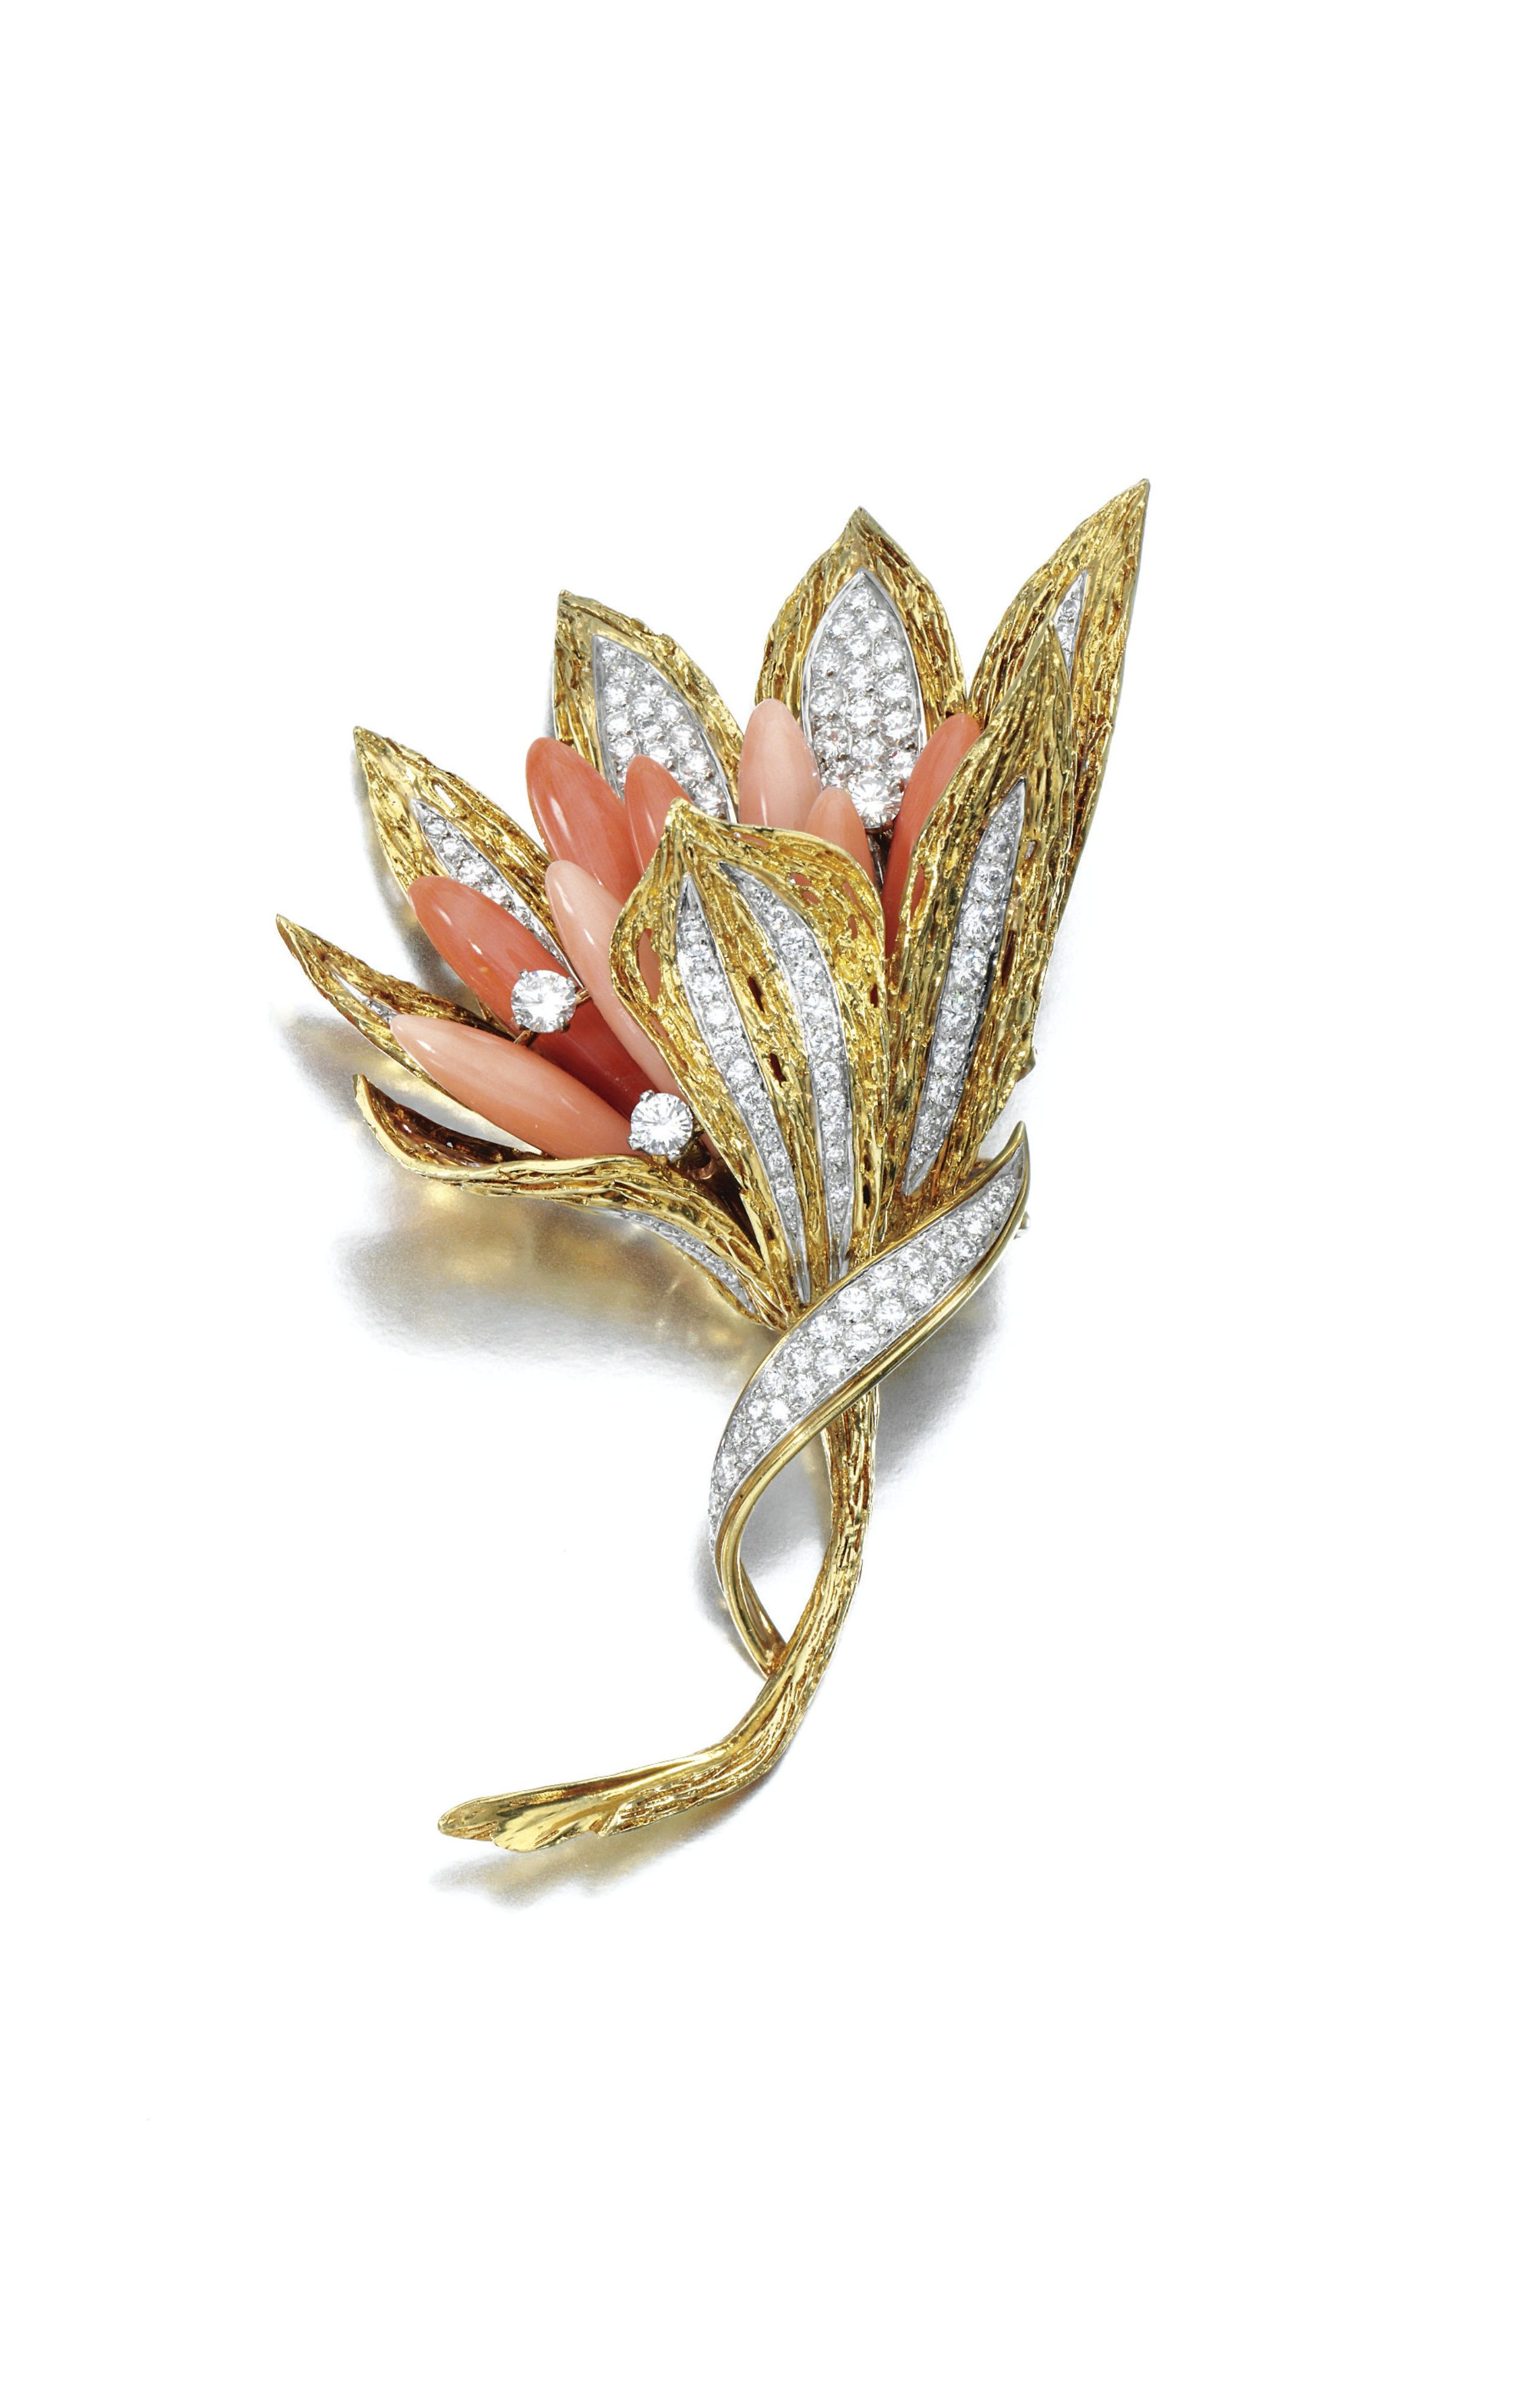 CORAL AND DIAMOND BROOCH Designed as a flower, the centre set with cabochon coral, highlighted with brilliant-cut diamonds, the textured petals and stem further set with similarly-cut diamonds, French assay and maker's mark, case.